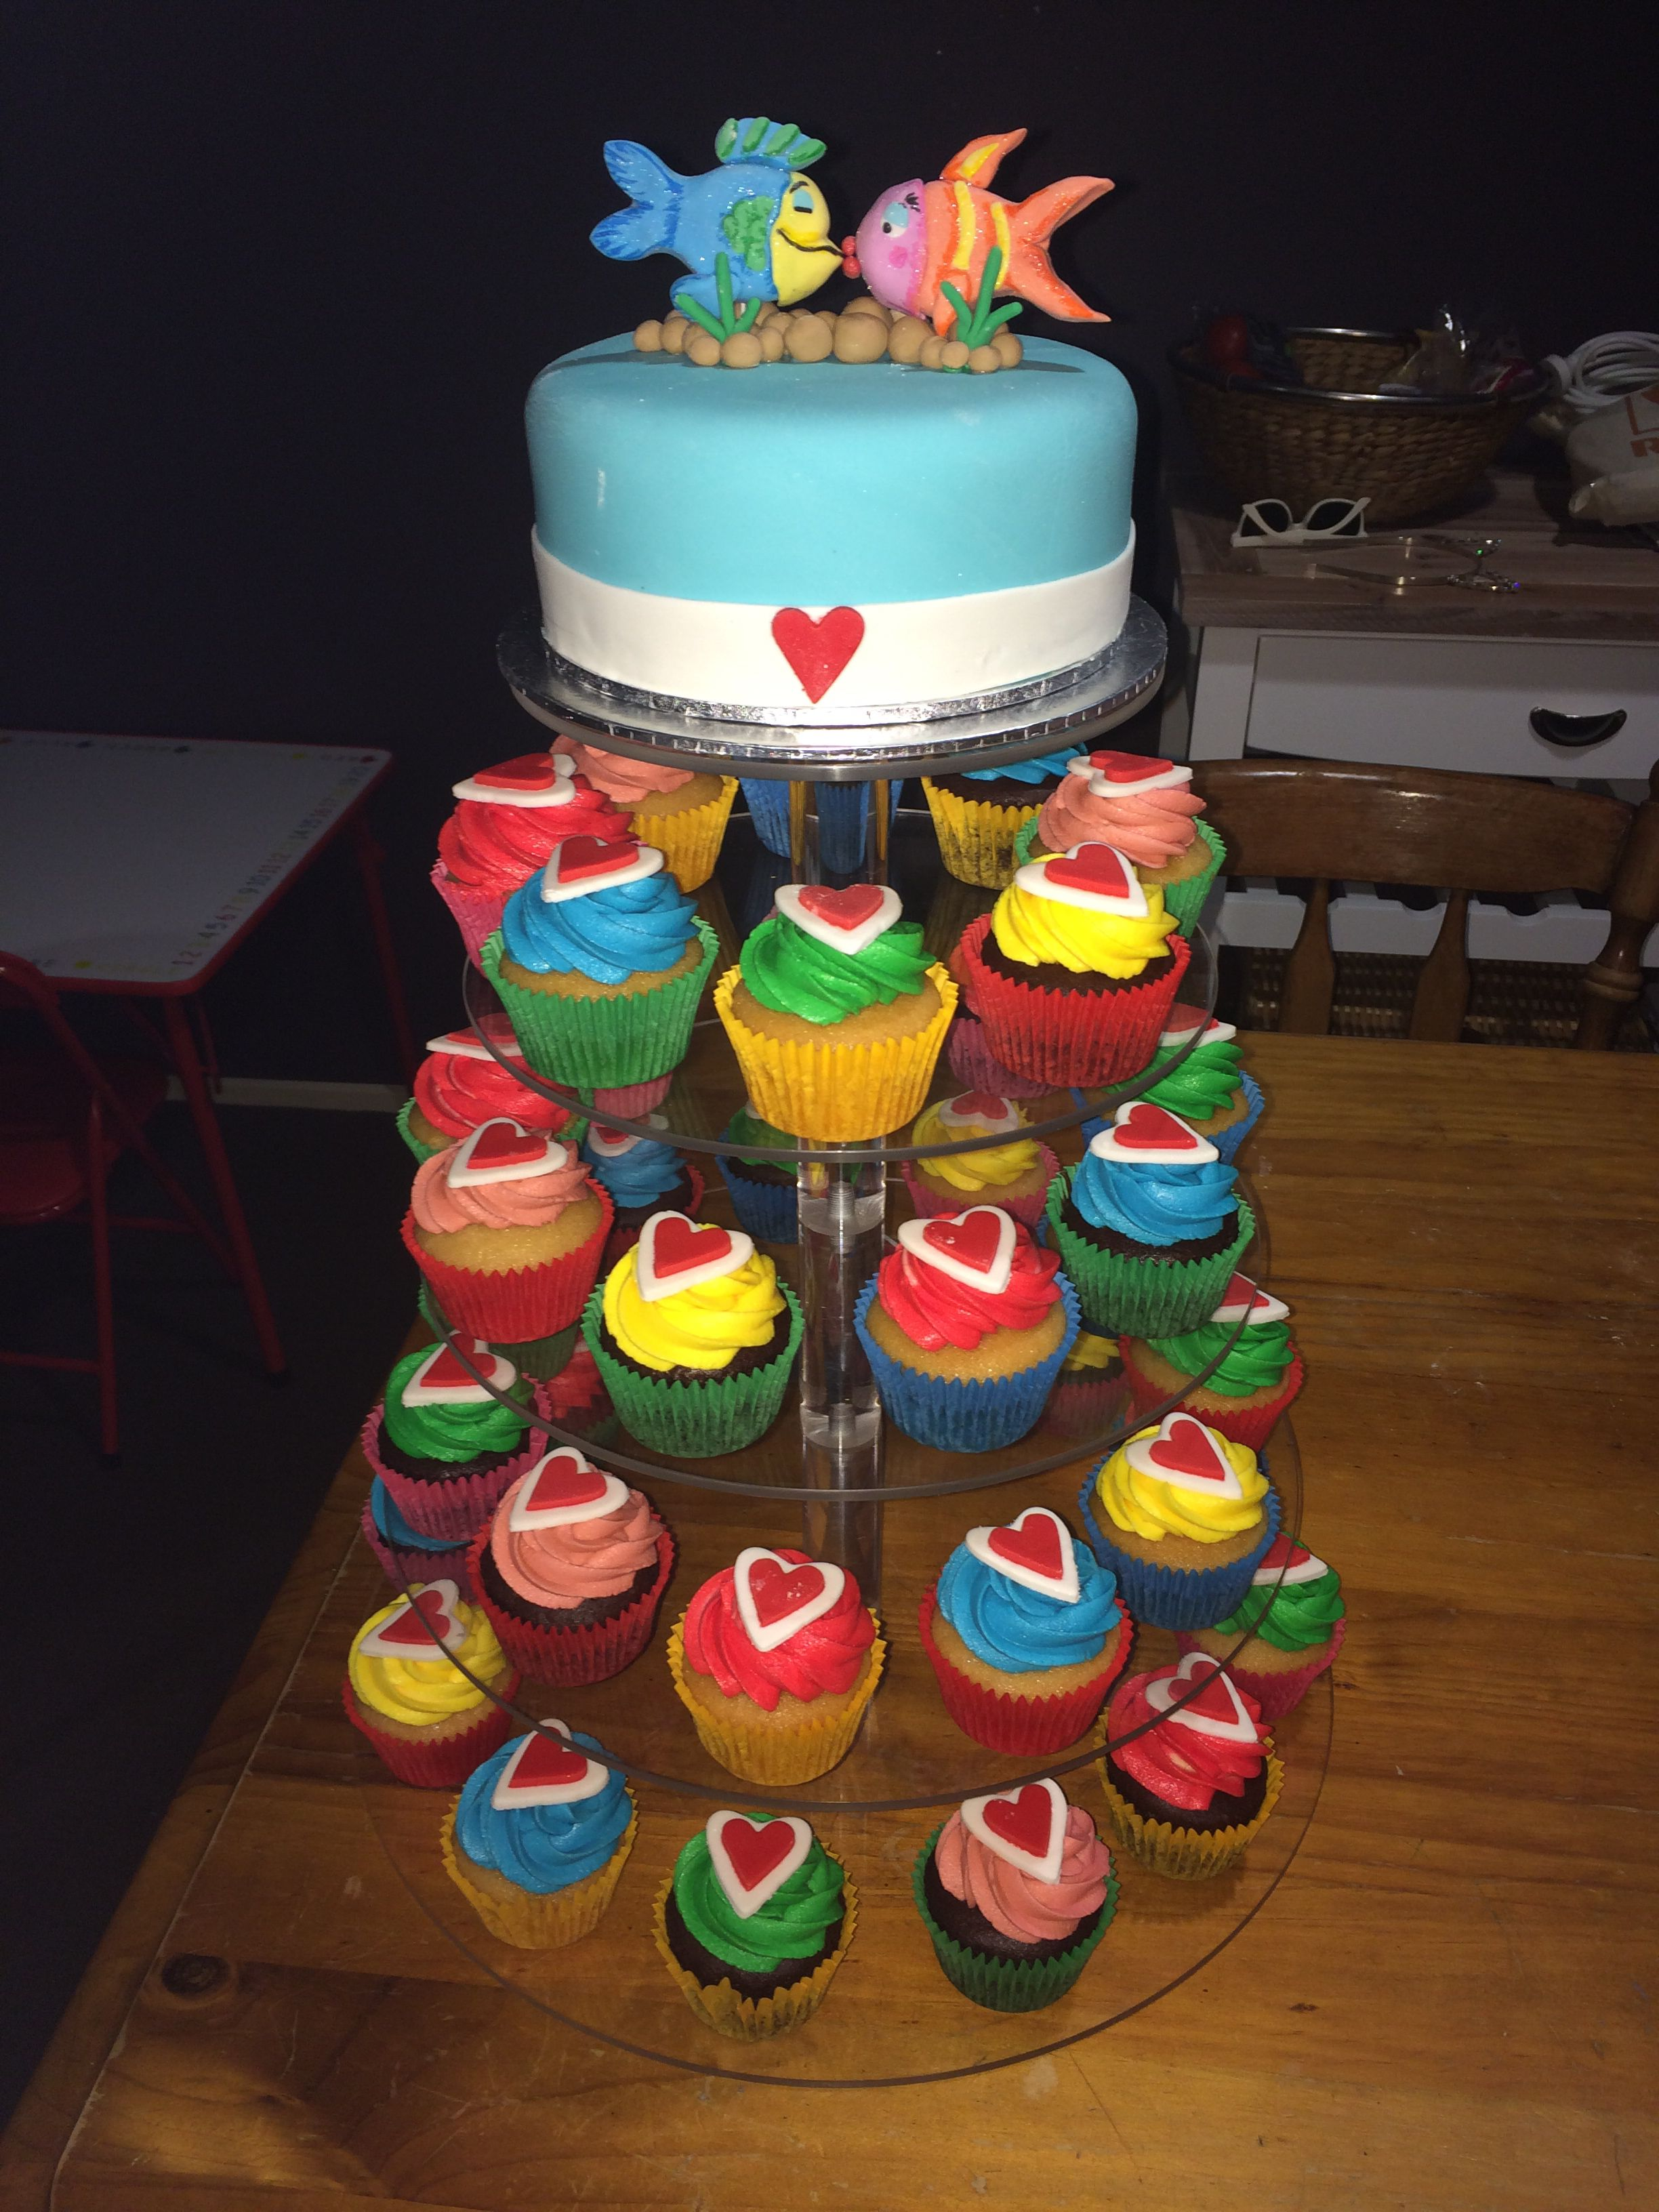 Kids Party Fish Inspired Cupcake Display Mrs Eatons Cupcakes - Childrens birthday party ideas canberra